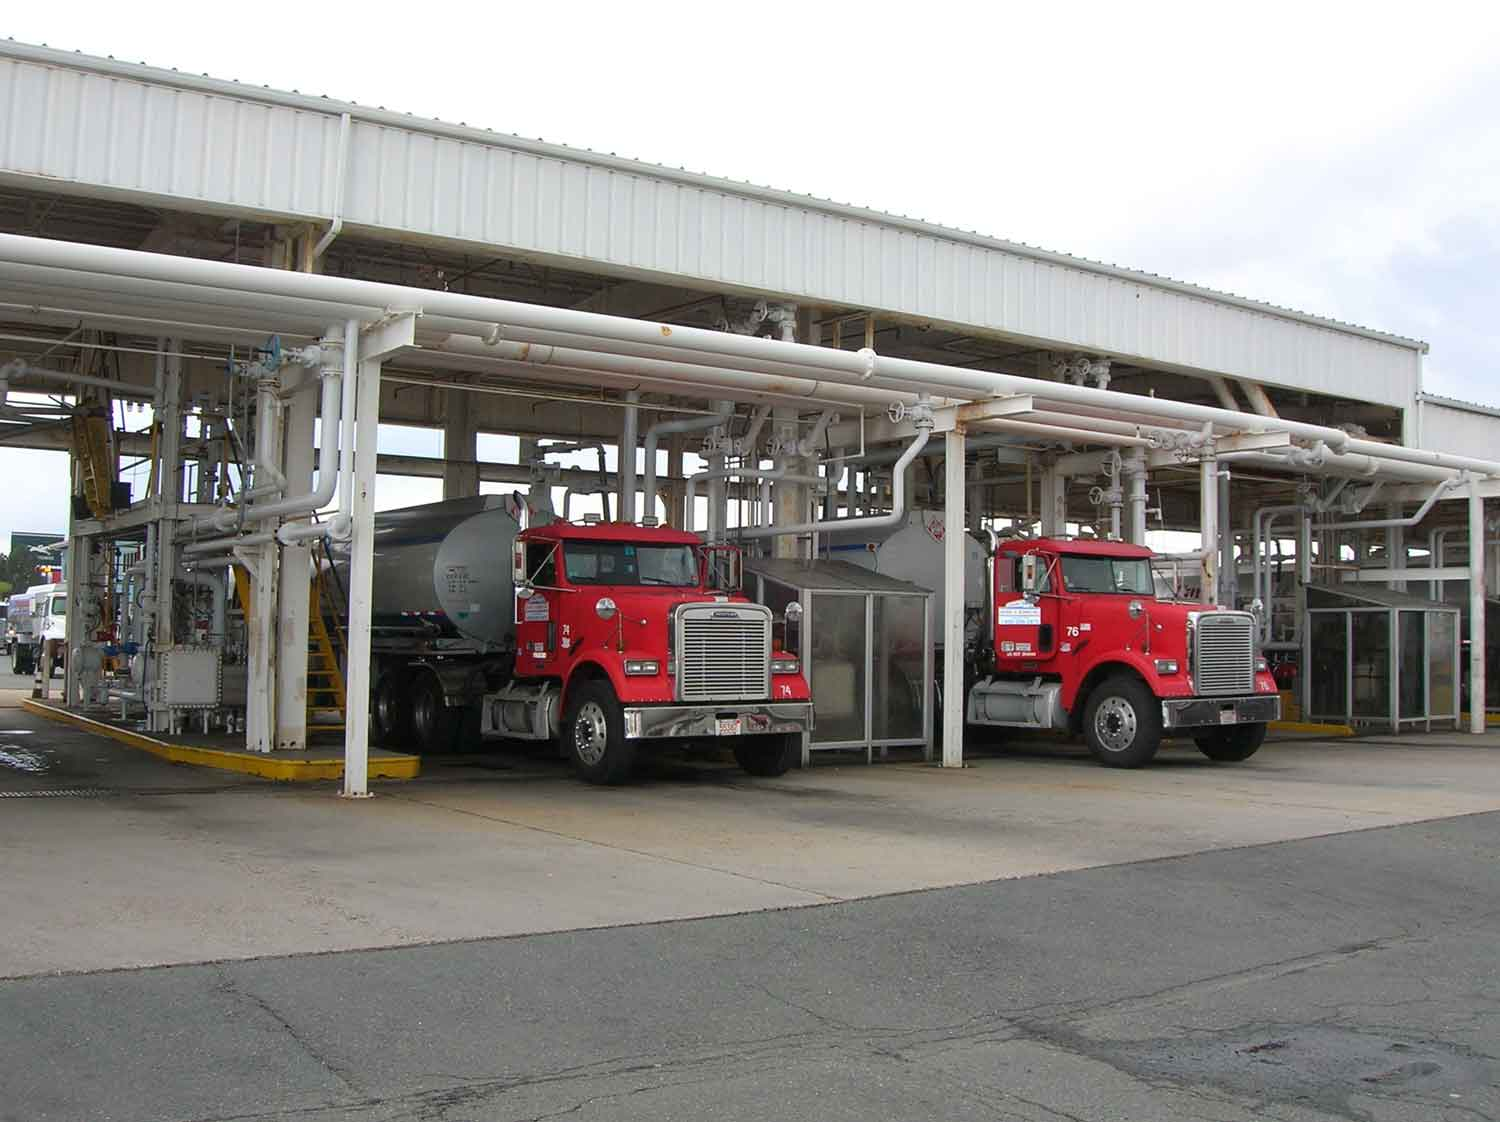 Two fueling trucks being filled up